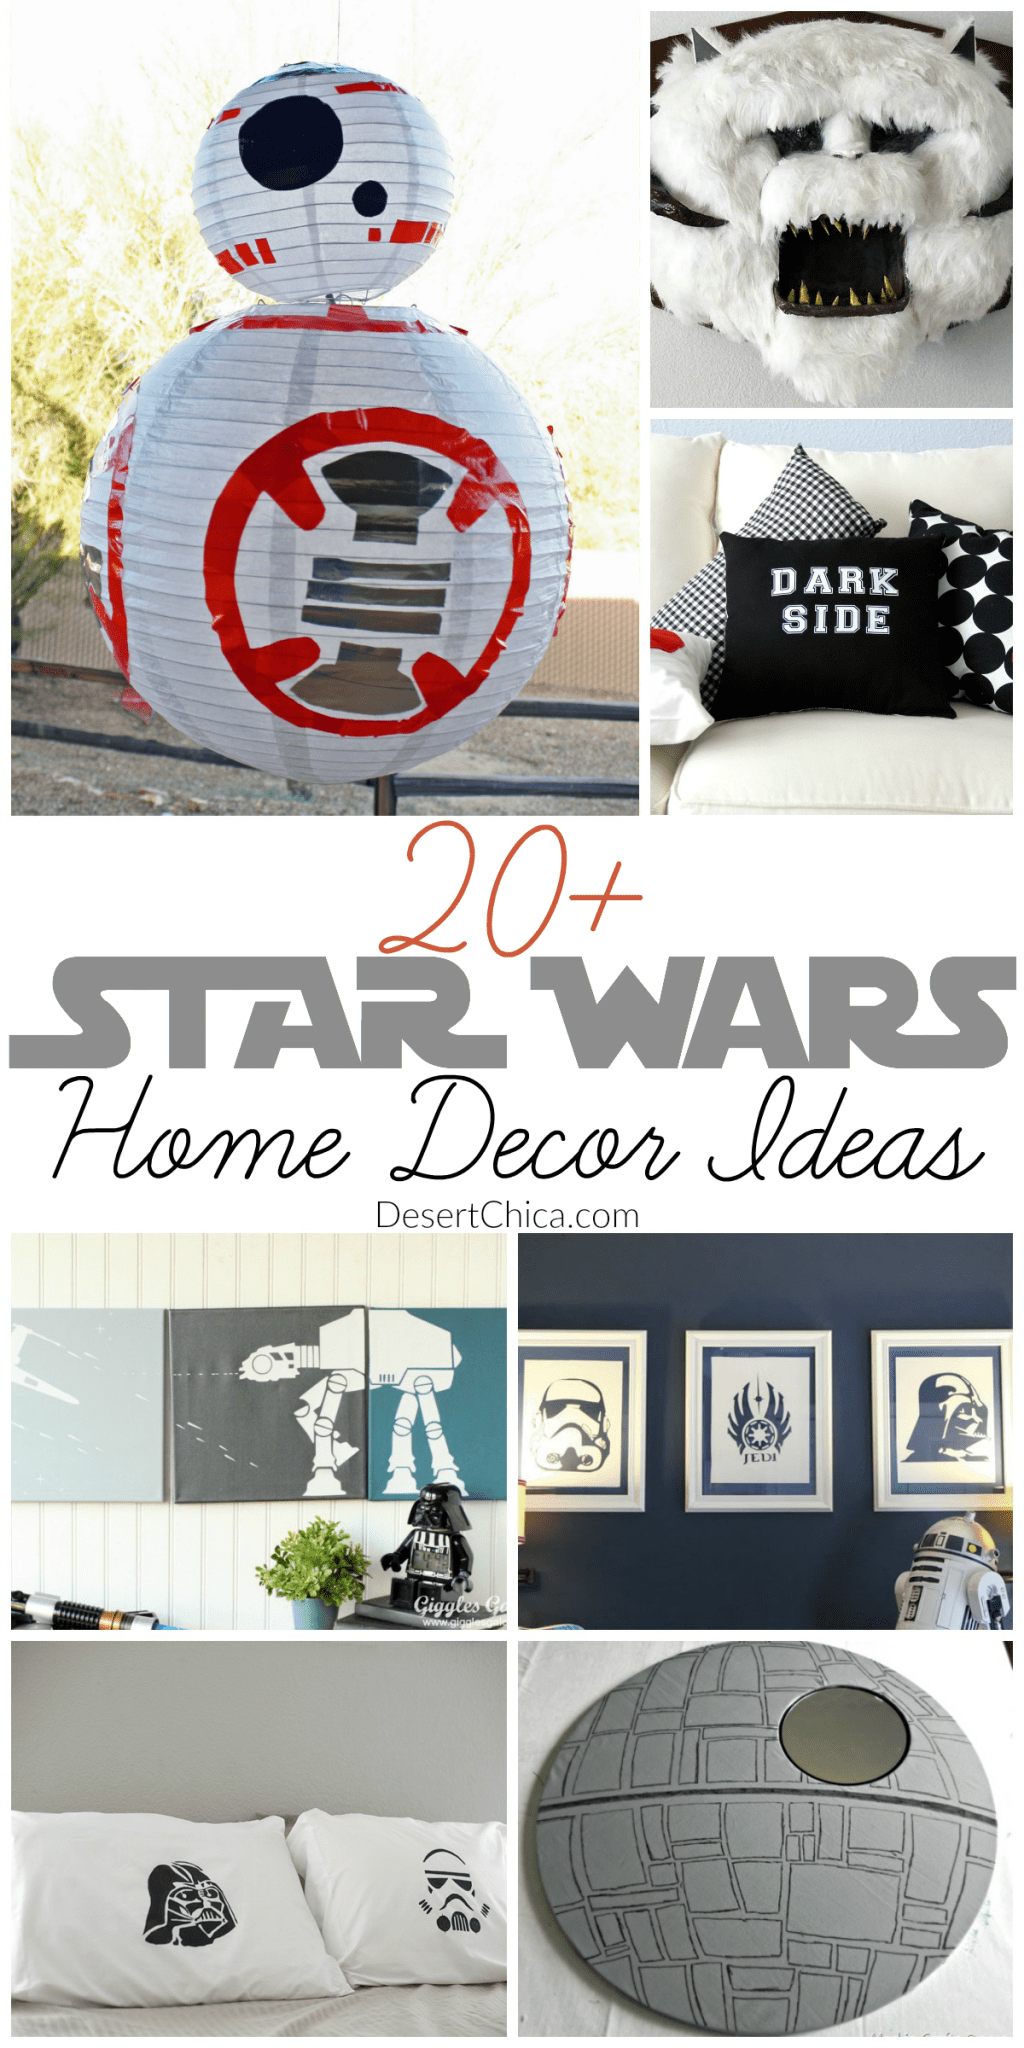 Star Wars Decorating Ideas 20 43 Star Wars Home Decor Ideas Desert Chica